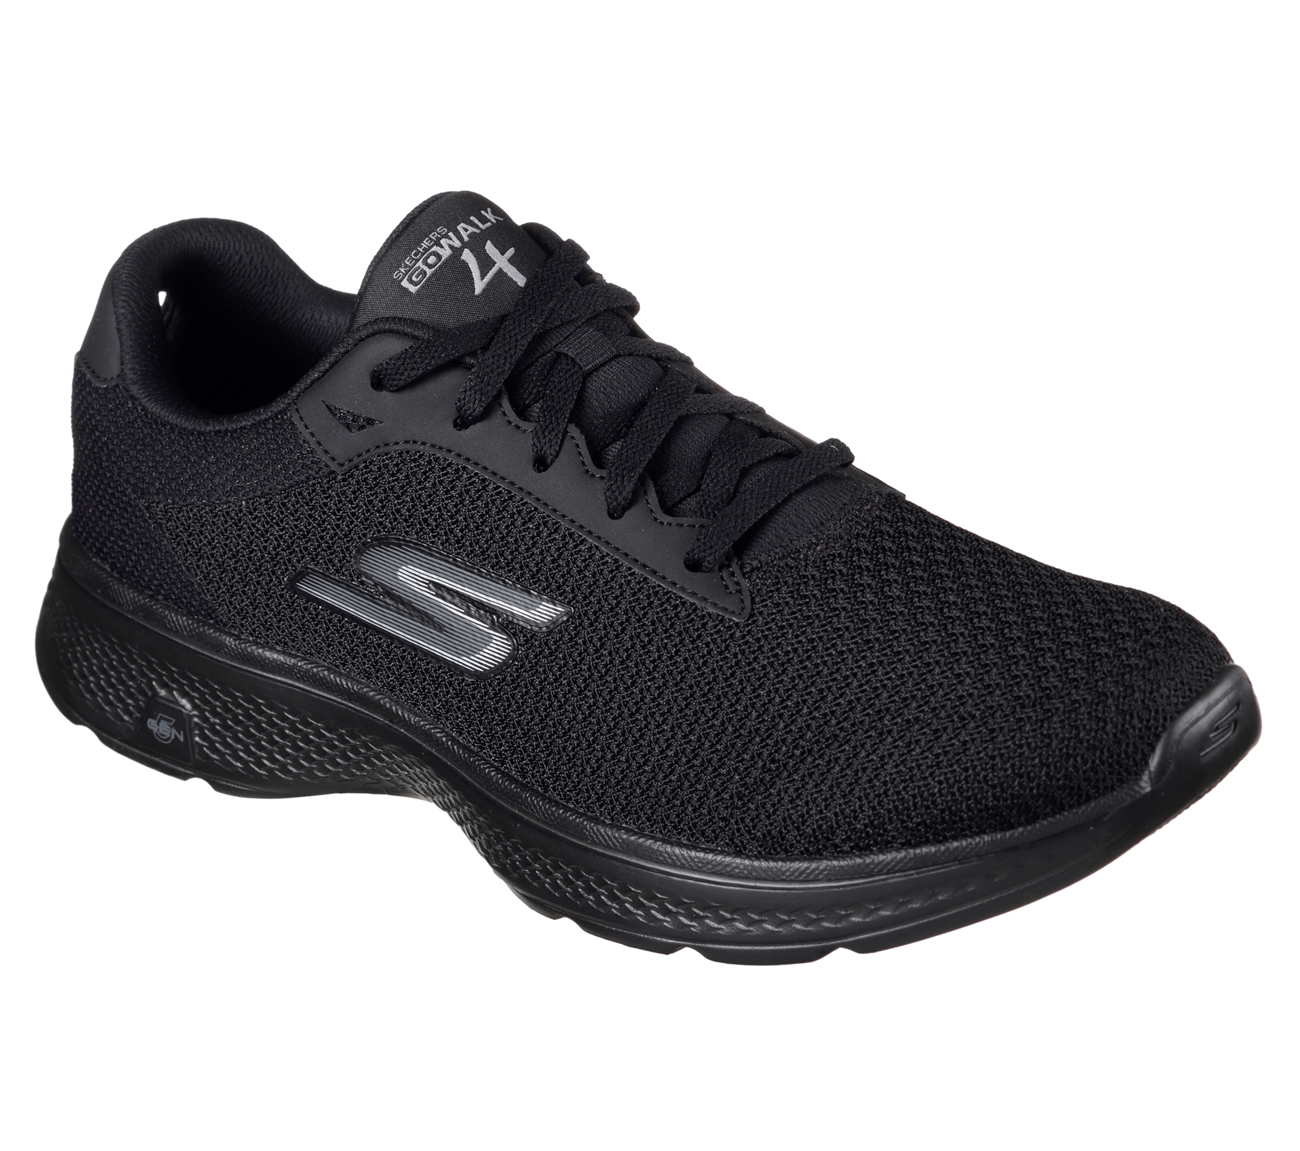 Buy SKECHERS Skechers GOwalk 4 Skechers Performance Shoes ...